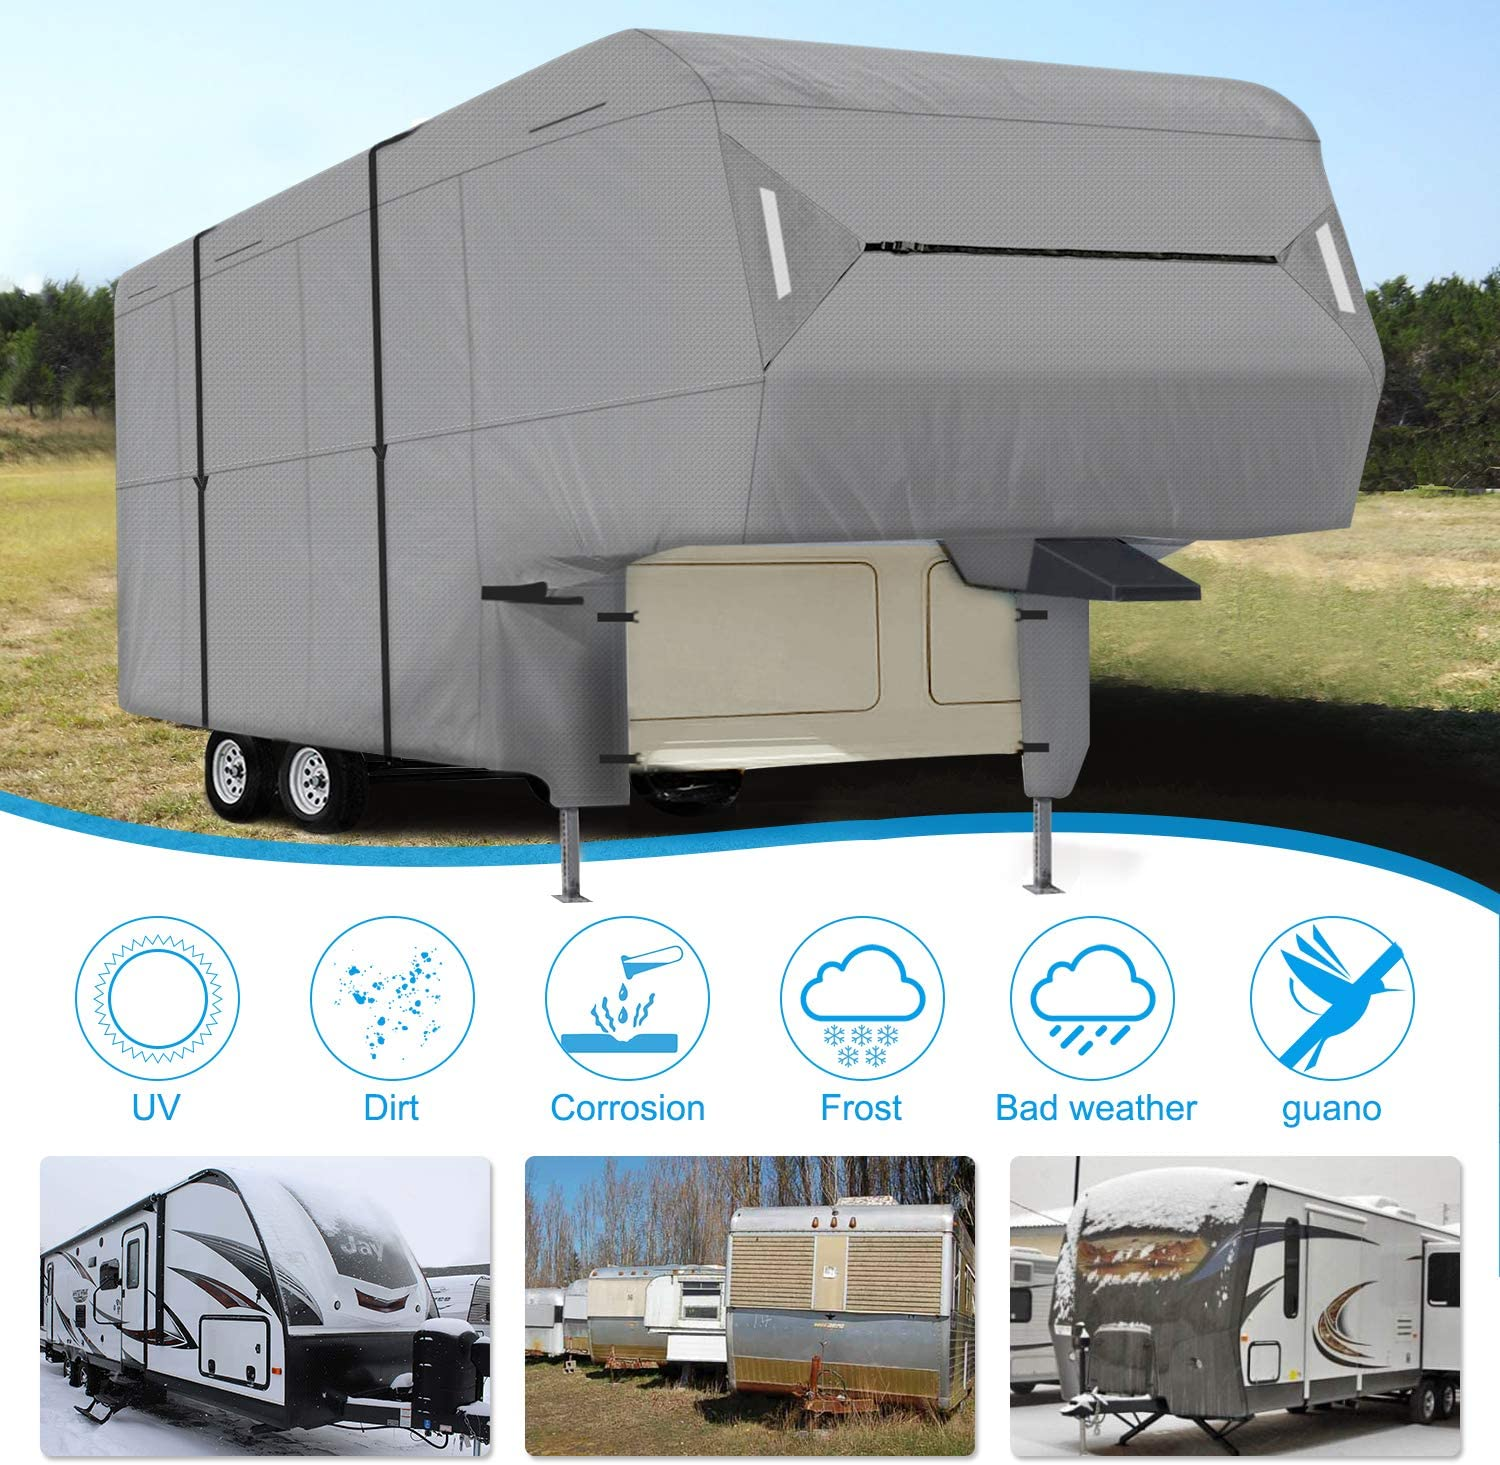 Ripstop Waterproof RVs Covers 33-37 XGEAR RV Cover 5th Wheel RV Cover Thick 3-Ply Top Panel